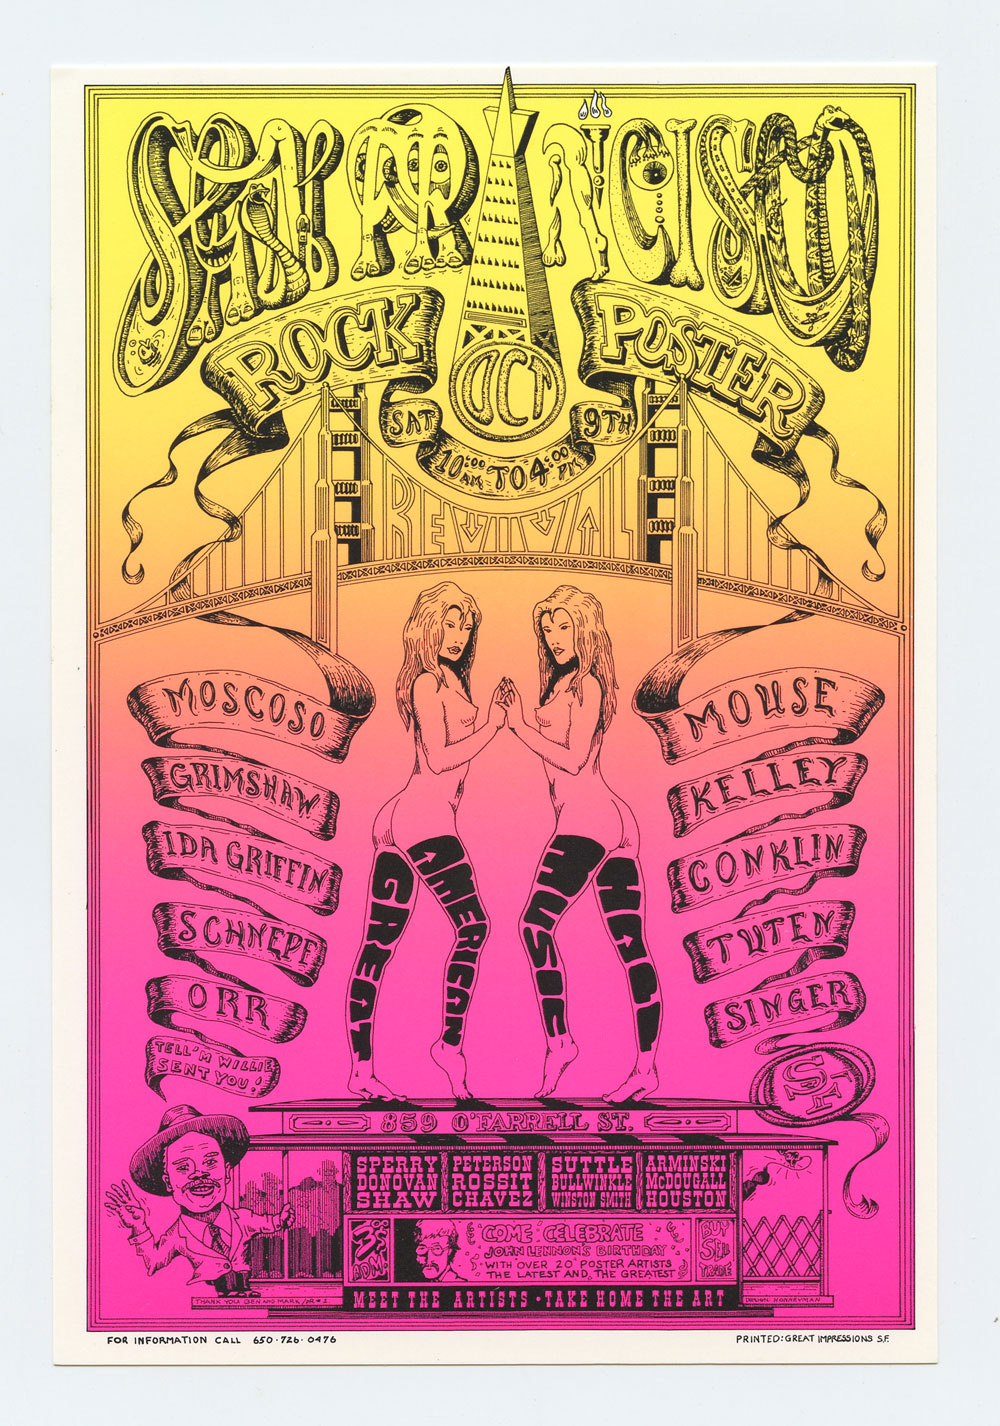 San Francisco Rock Poster Revival Handbill 1993 Oct 9 Moscoso Mouse Grimshaw Griffin